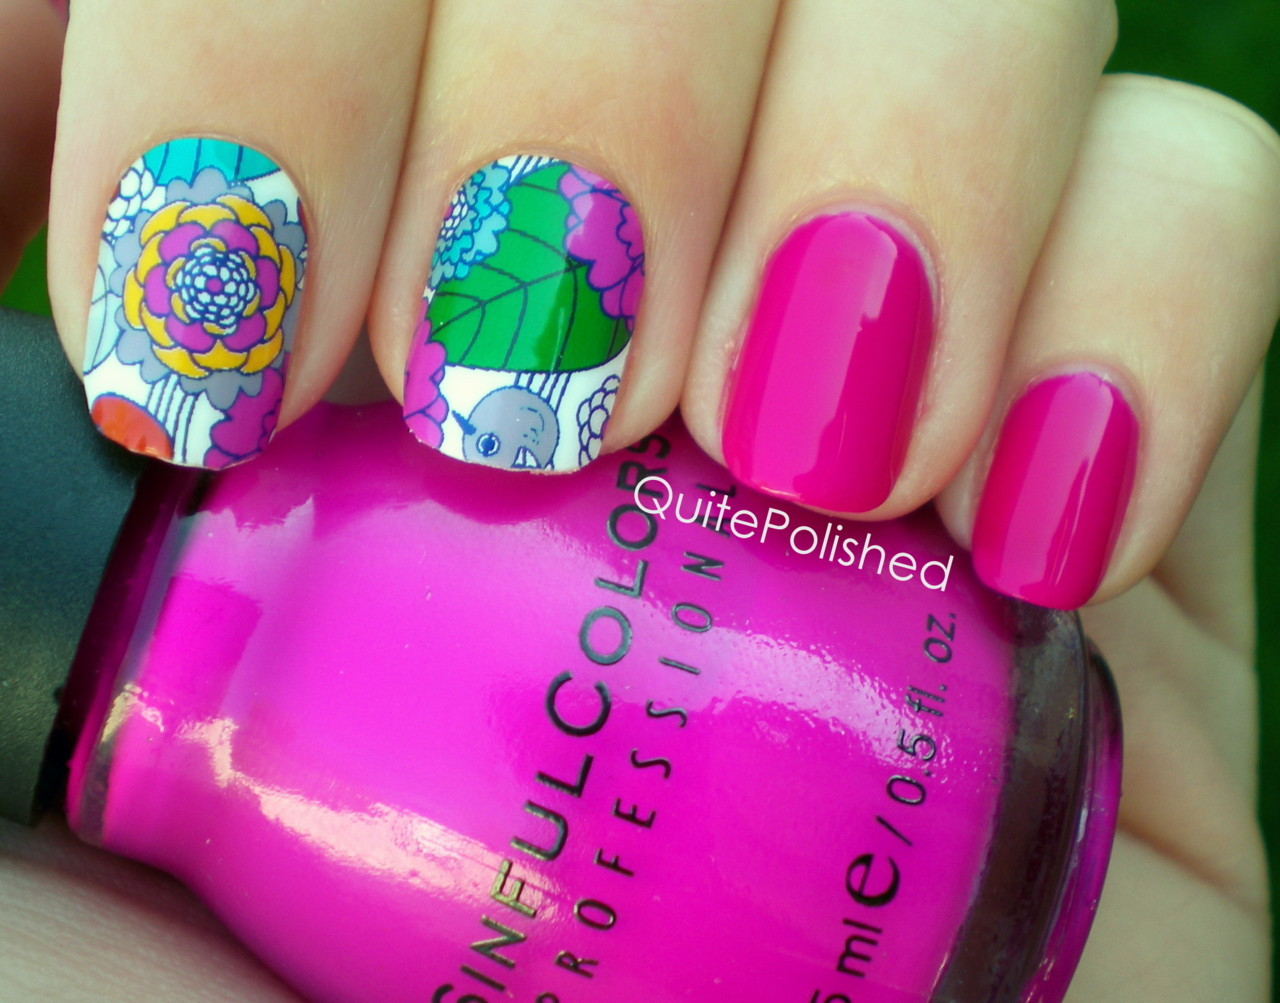 quitepolished:  Jamberry Nail Shields - Spring Flower So Jamberry is kind like Avon with how they have representatives that sell the products, and we have a representative in my town who worked with my school to give out samples to people who bought post prom tickets, and these were the ones that I chose!   I love birds and florals and both are things that I'm scared of even attempting on my nails so I chose the Spring Flower design, which has both! To put these on you warm them up with a hair dryer for 15 seconds then apply to your nail. Then you file off the excess and use the hair dryer again to seal them. It was pretty easy, although I had some problems getting the tips to stay completely smooth on my index fingers. It's nothing too horrible though, and these feel very secure on my nails instead of feeling like foreign objects.  Also shown is three coats of Sinful Colors Dream On.